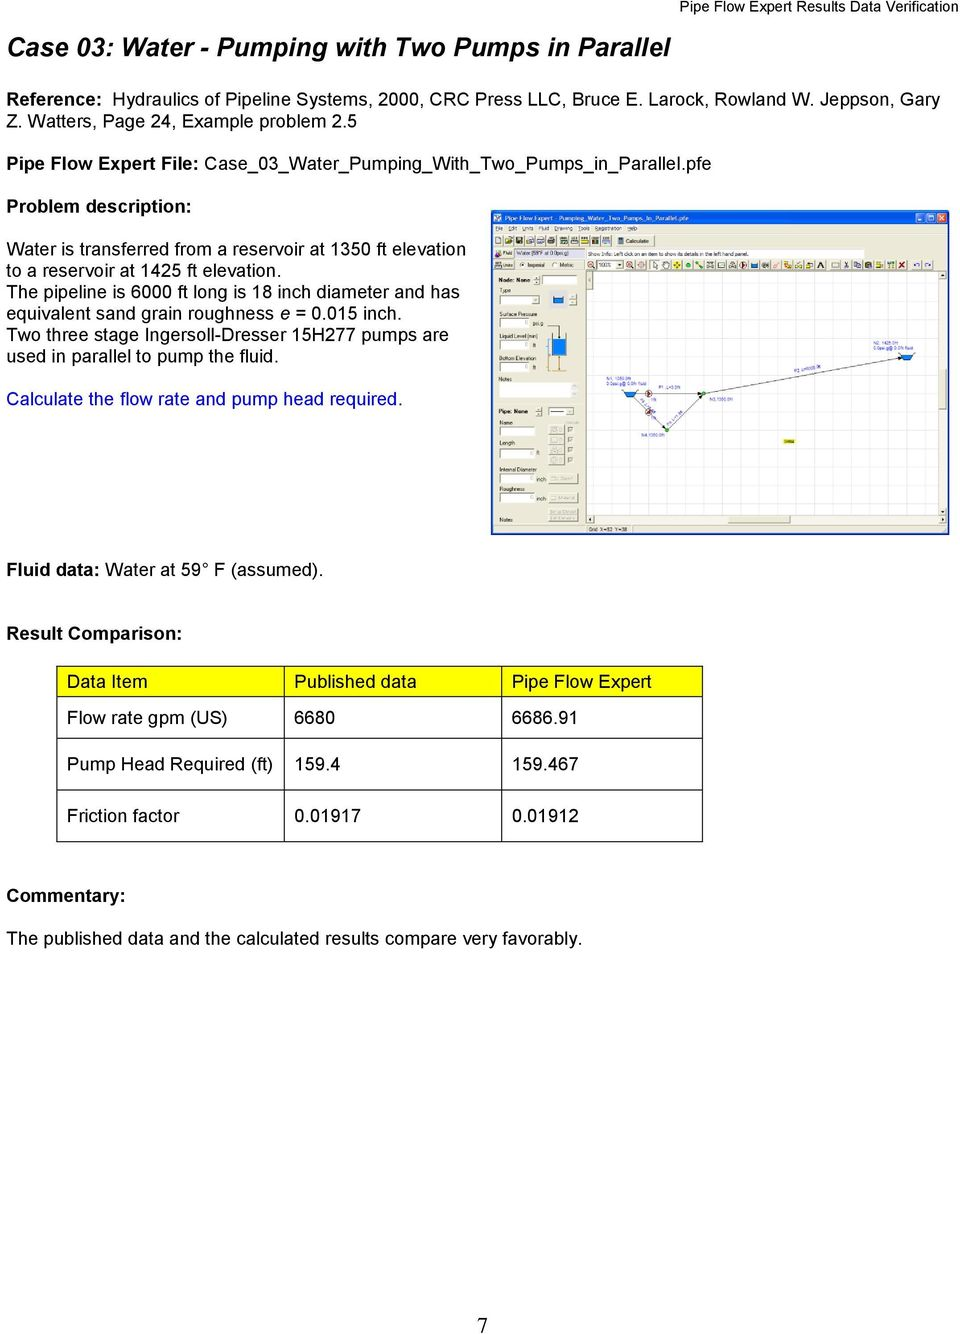 Pipe Flow Expert  Verification of Calculation Results - PDF